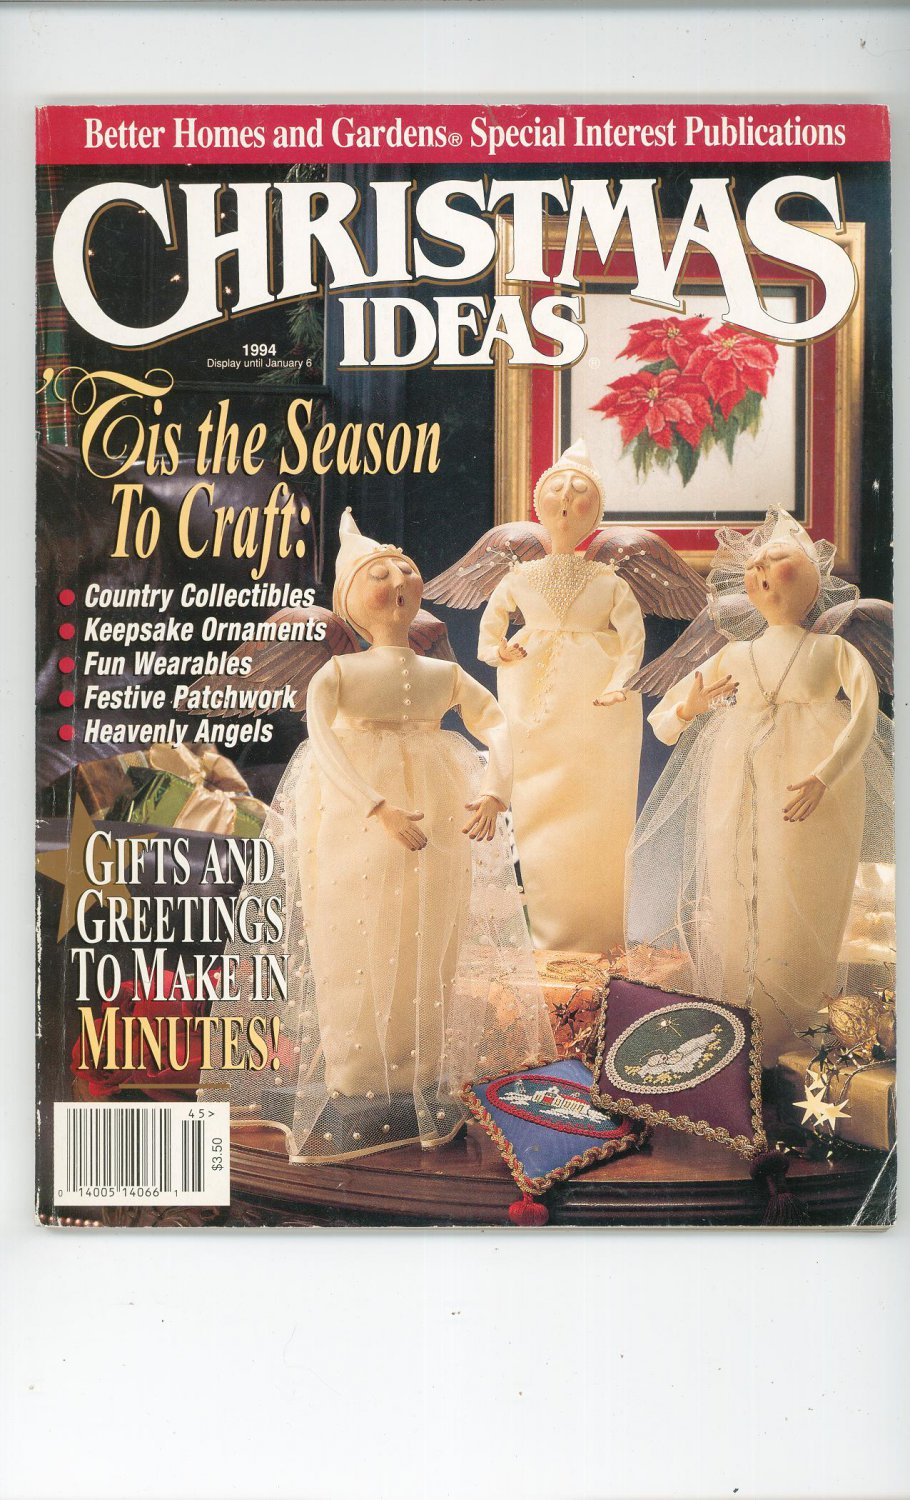 Christmas Ideas By Better Homes And Gardens 1994 Gifts And Greetings To Make In Minutes